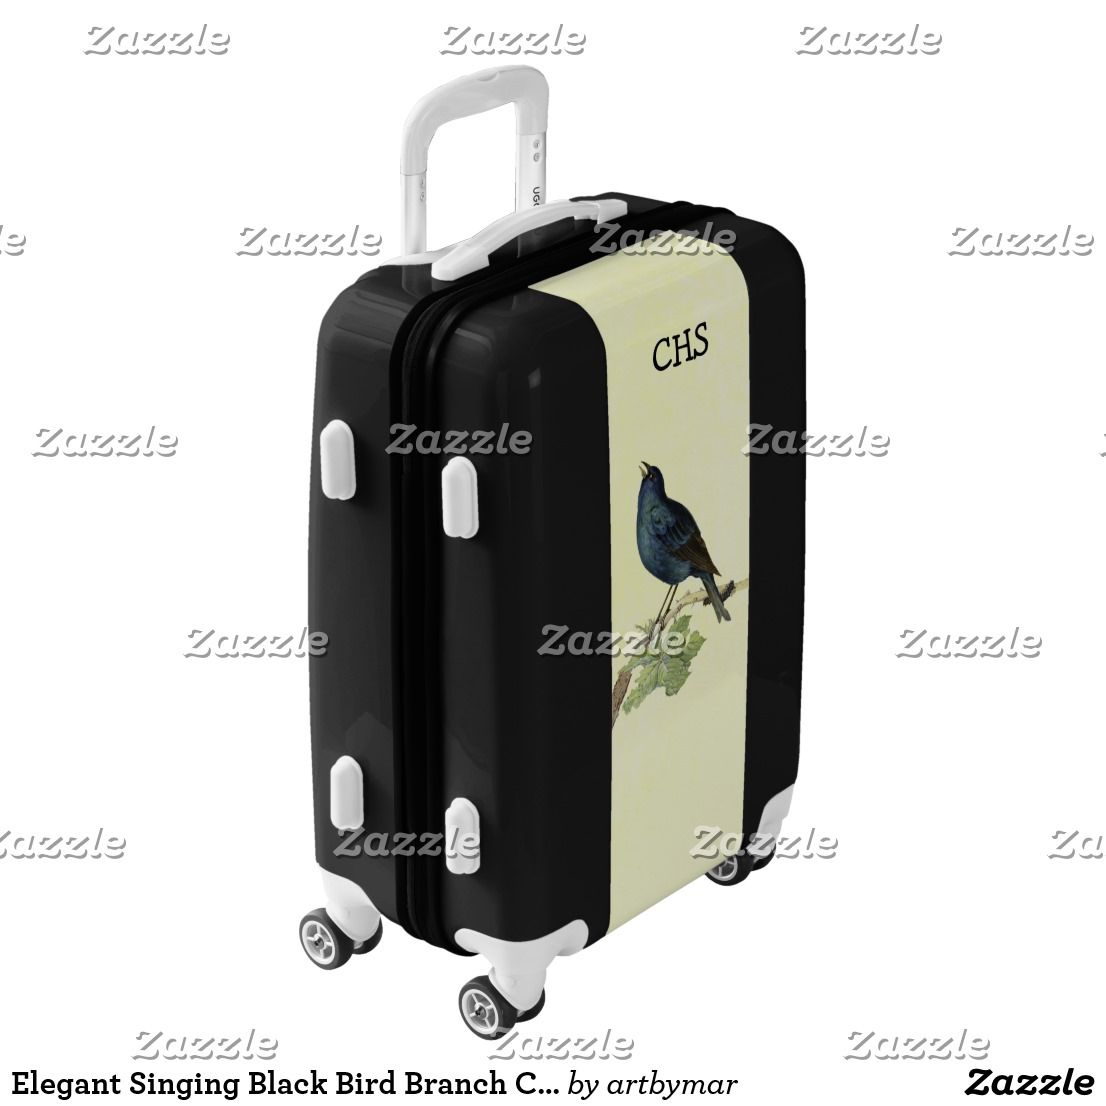 Elegant Singing Black Bird Branch Caterpillar Luggage